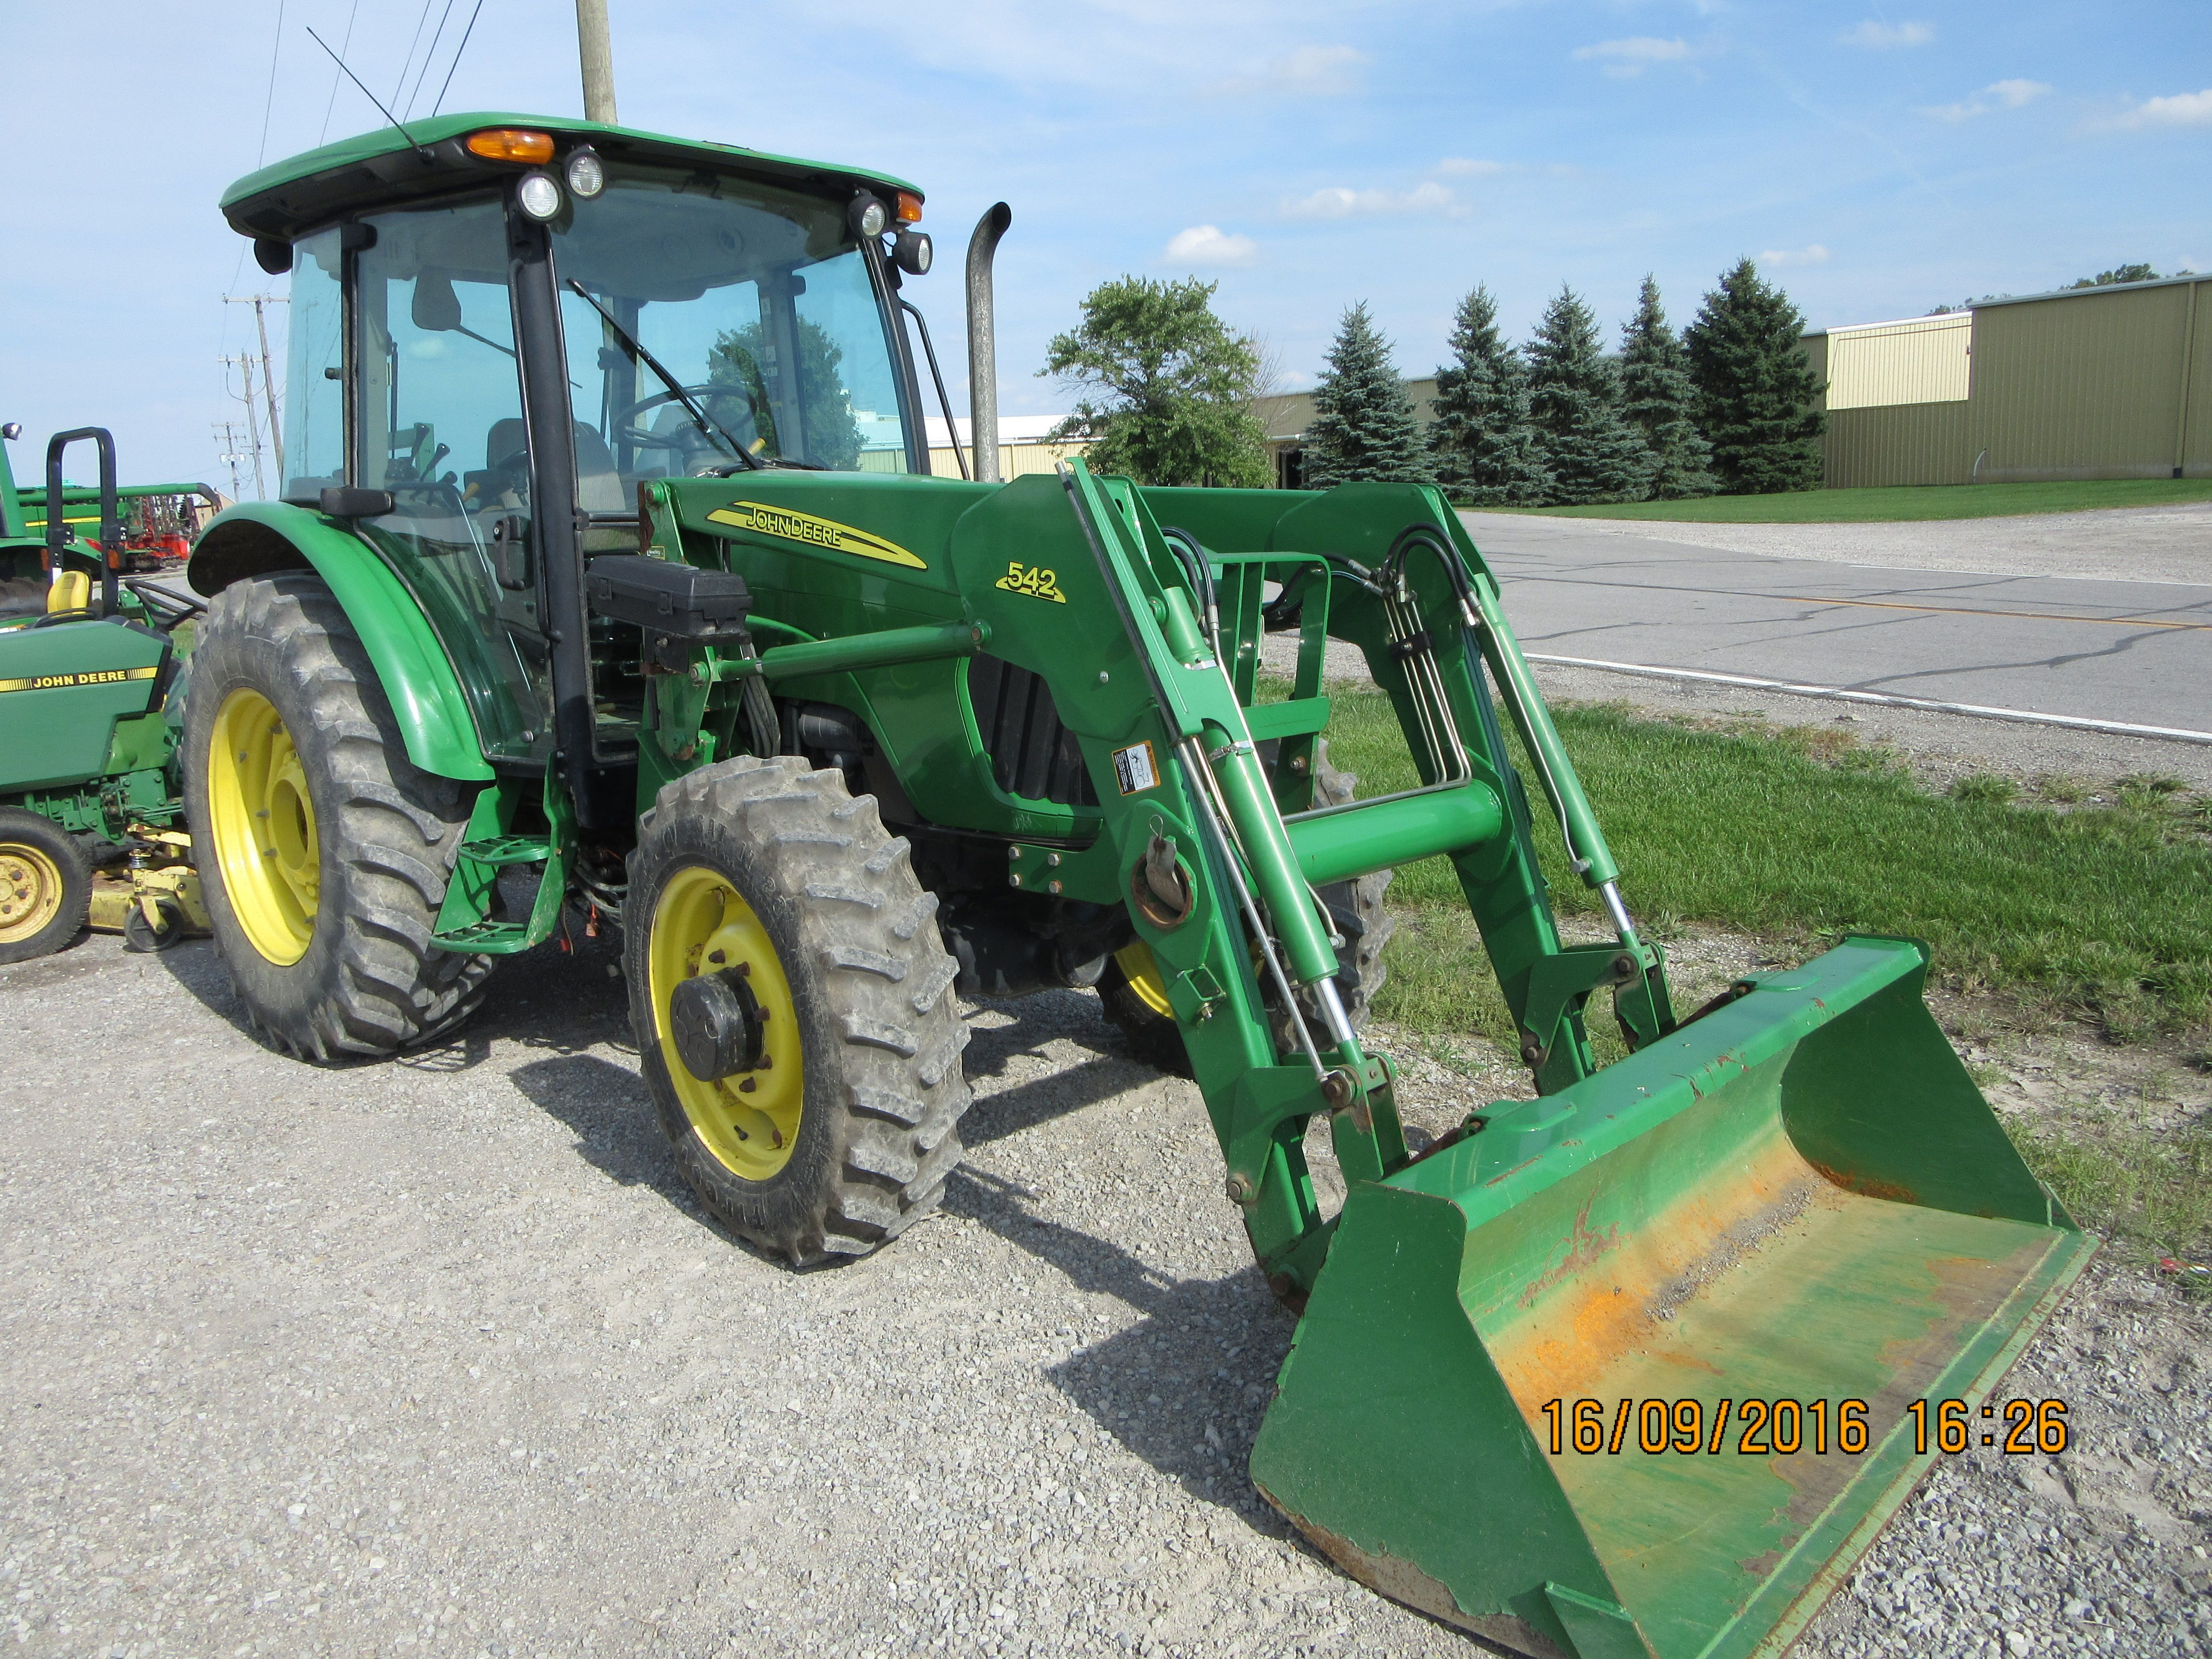 Pin On Jd Farm Equip My Pictures